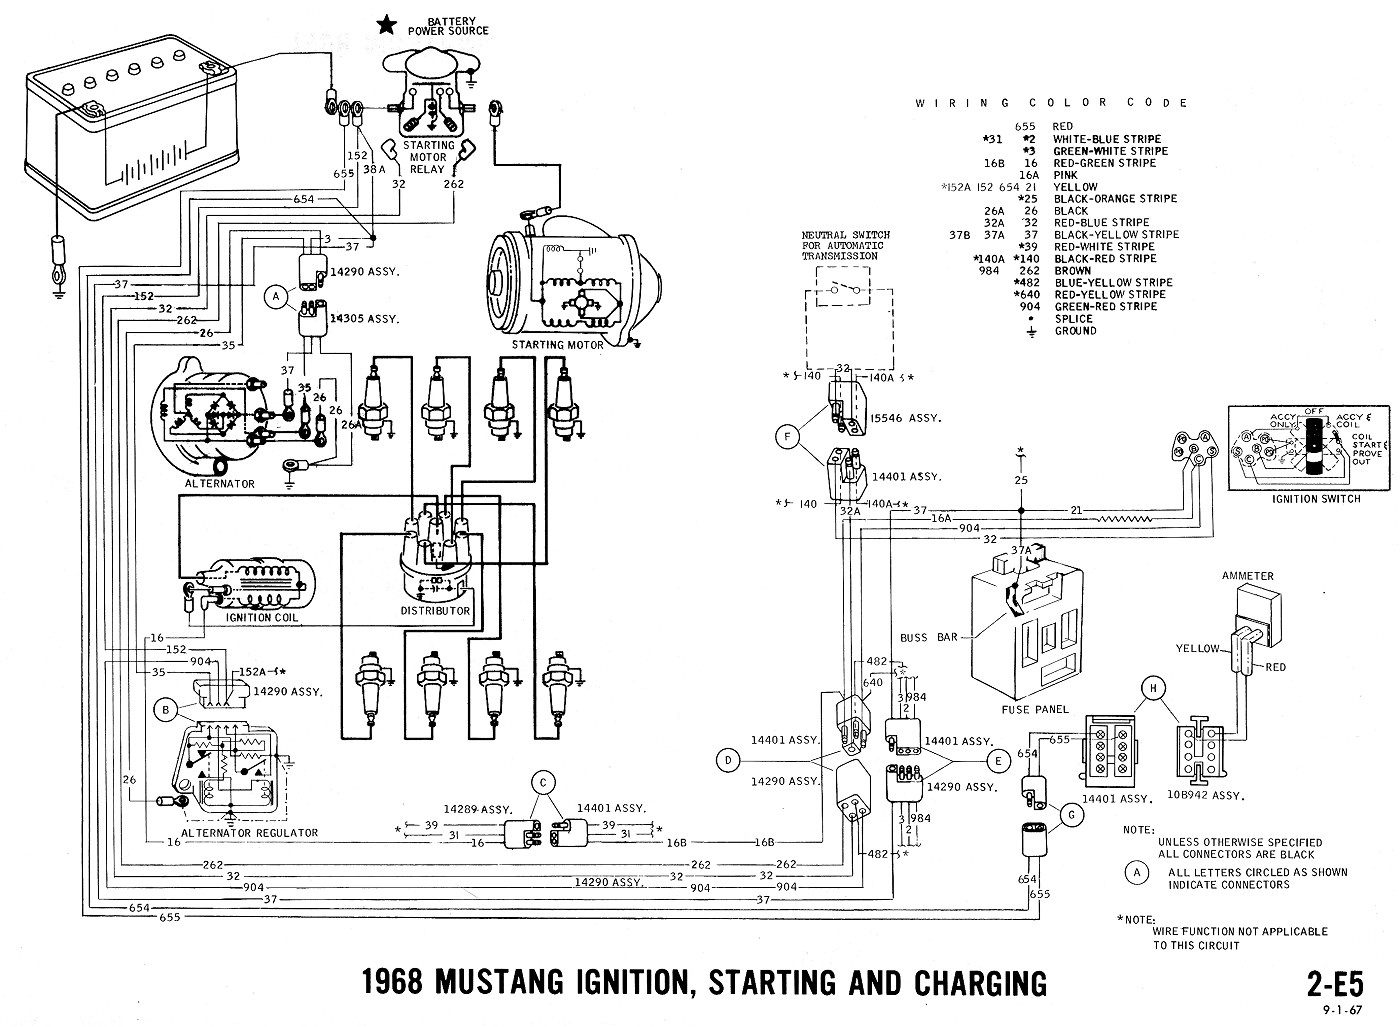 1968 mustang wiring diagrams evolving software rh peterfranza com 1966 mustang wiring diagram 1966 mustang wiring diagram manual